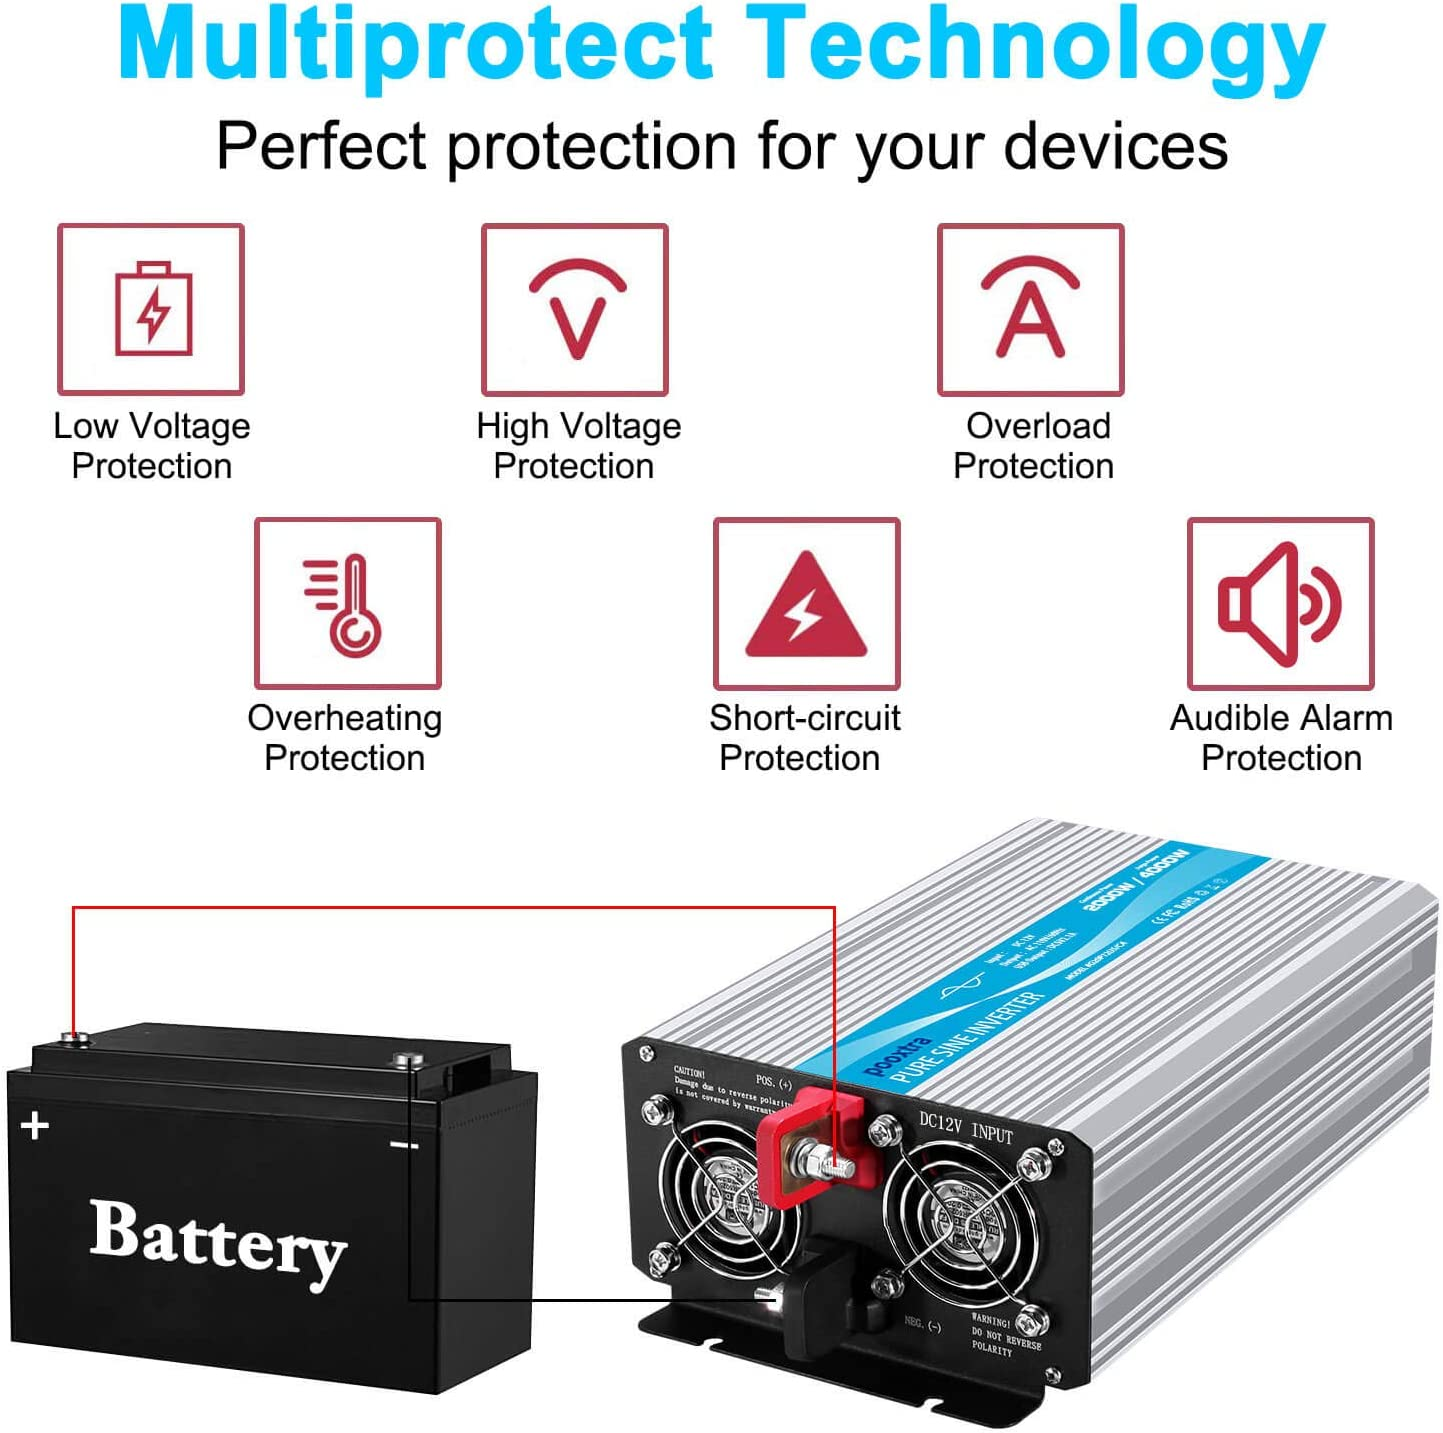 pooxtra 2000W Pure Sine Wave Power Inverter 12V to 110V 4000W Peak Power Converter with 4 AC Outlets and 2.1A USB Port & Remote Controller for RV Trucks Boats and Emergency: Car Electronics